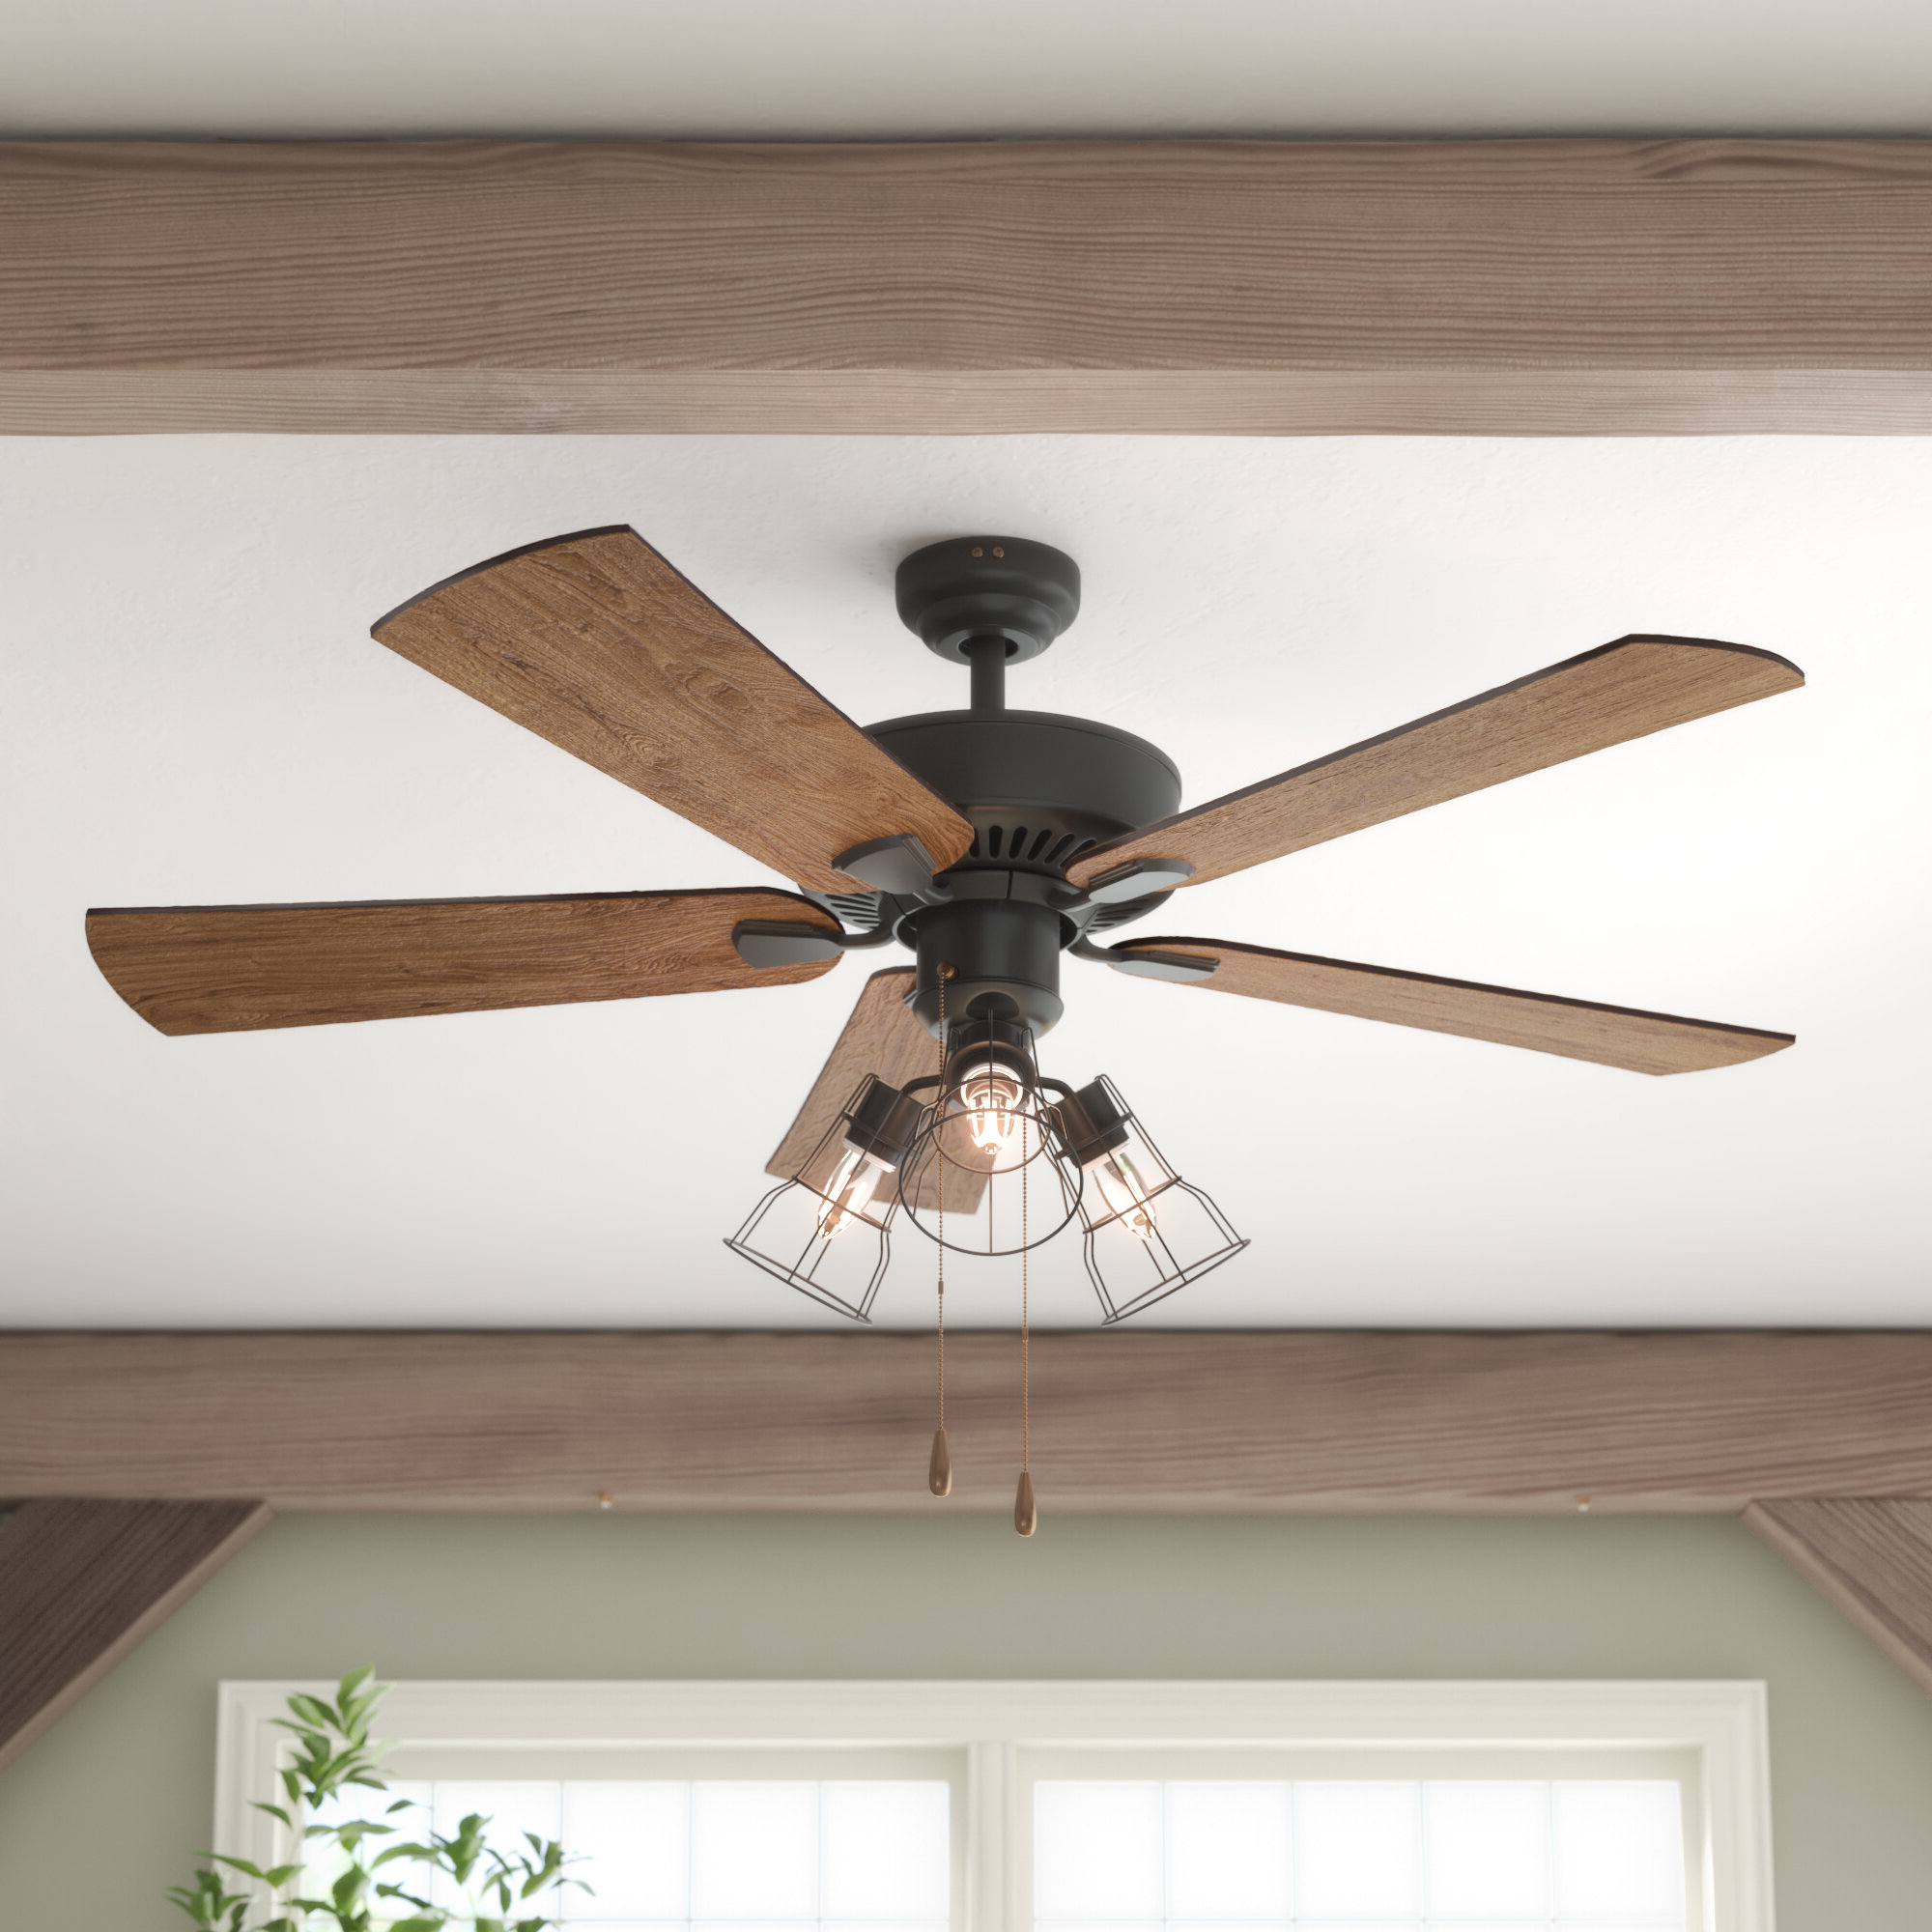 "Most Recent 52"" Socorro 5 Blade Led Ceiling Fan, Light Kit Included With Regard To Ratcliffe 5 Blade Led Ceiling Fans (View 5 of 20)"